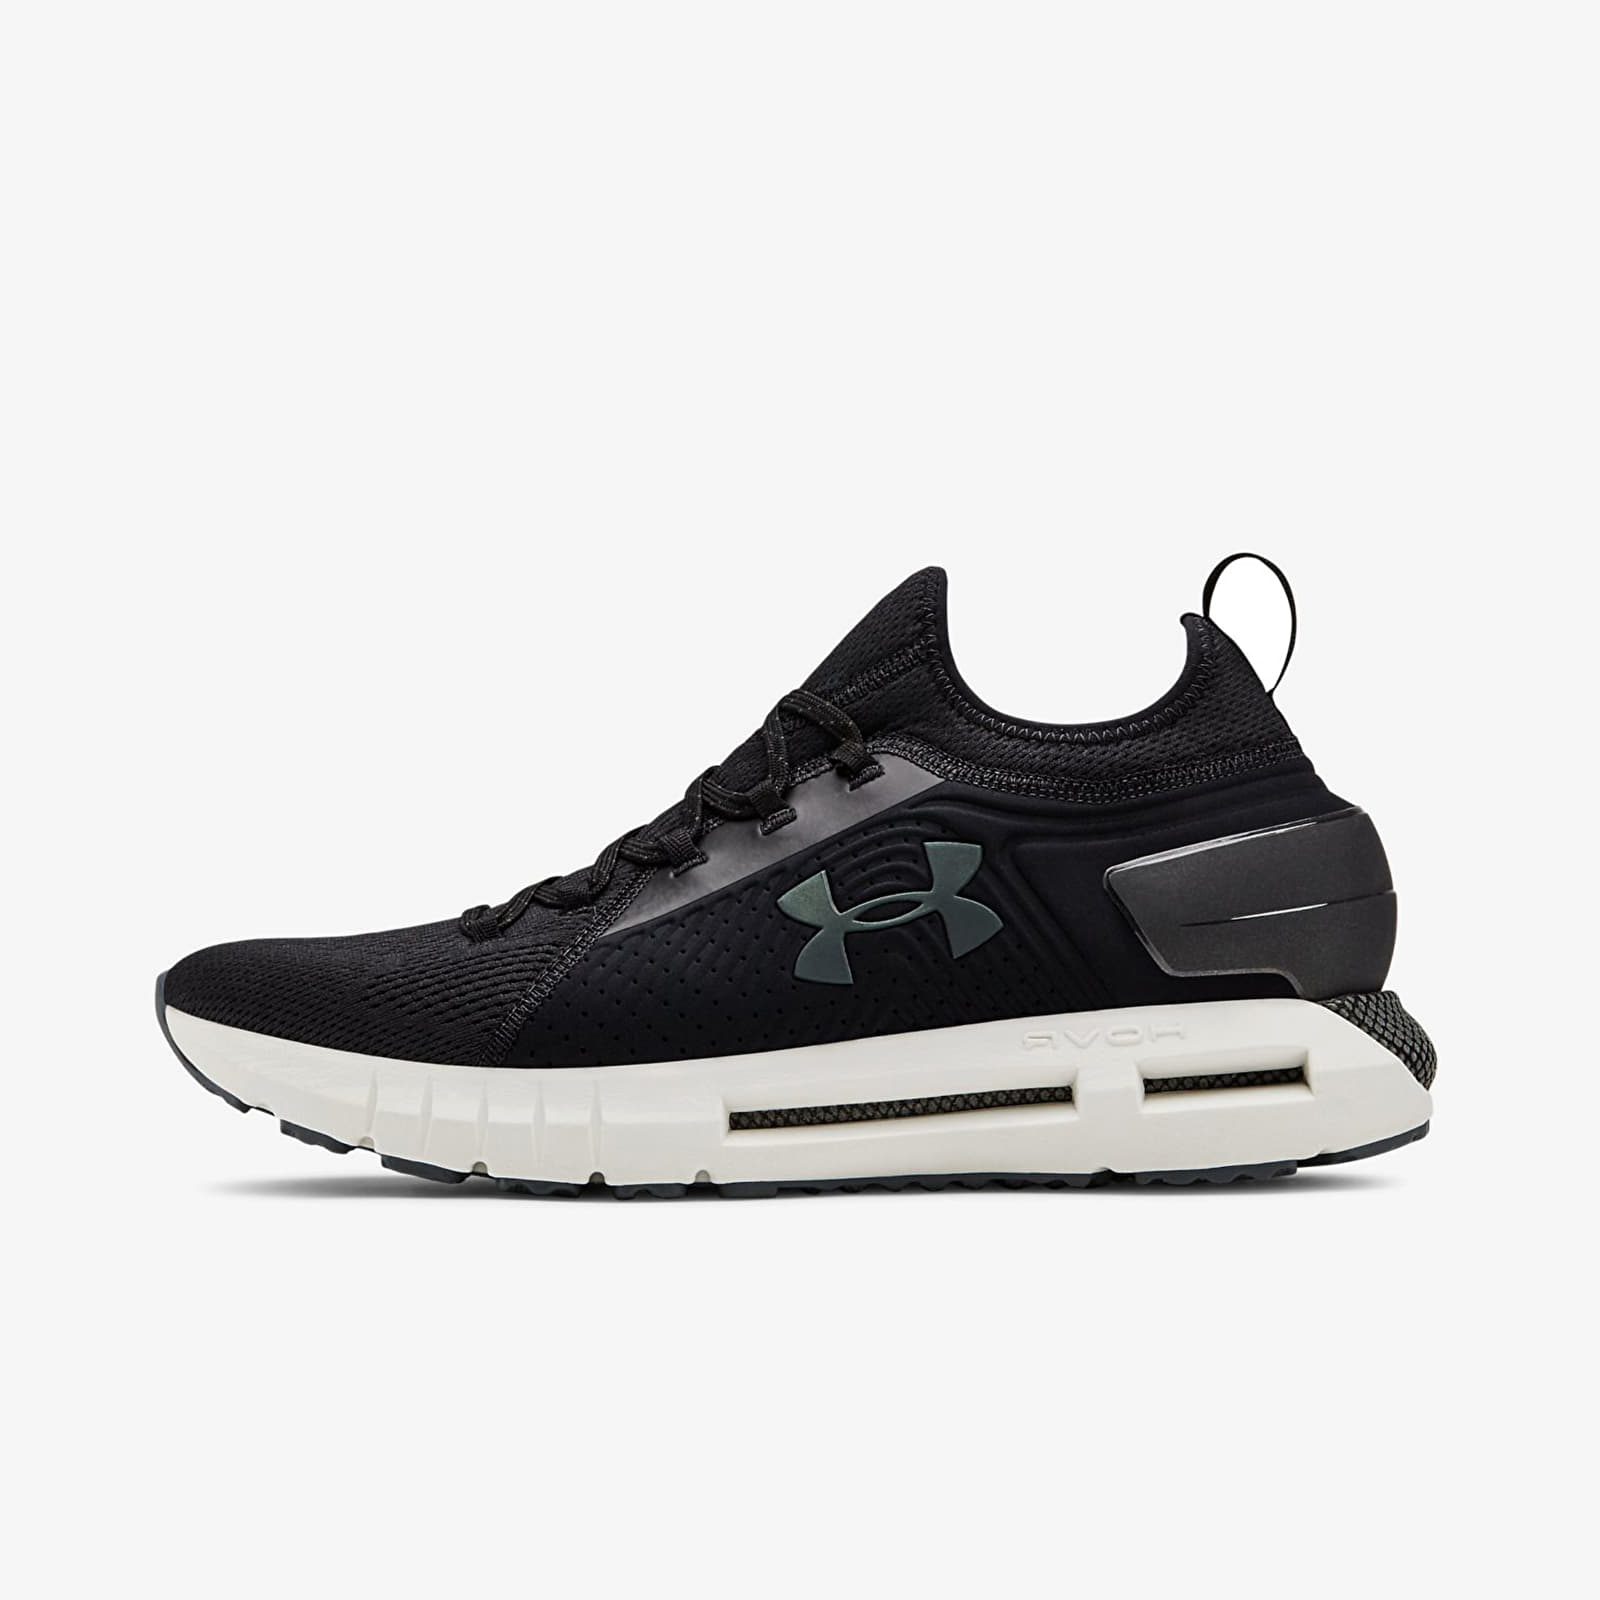 Мъжки кецове и обувки Under Armour HOVR Phantom SE Black/ Onyx White/ Black